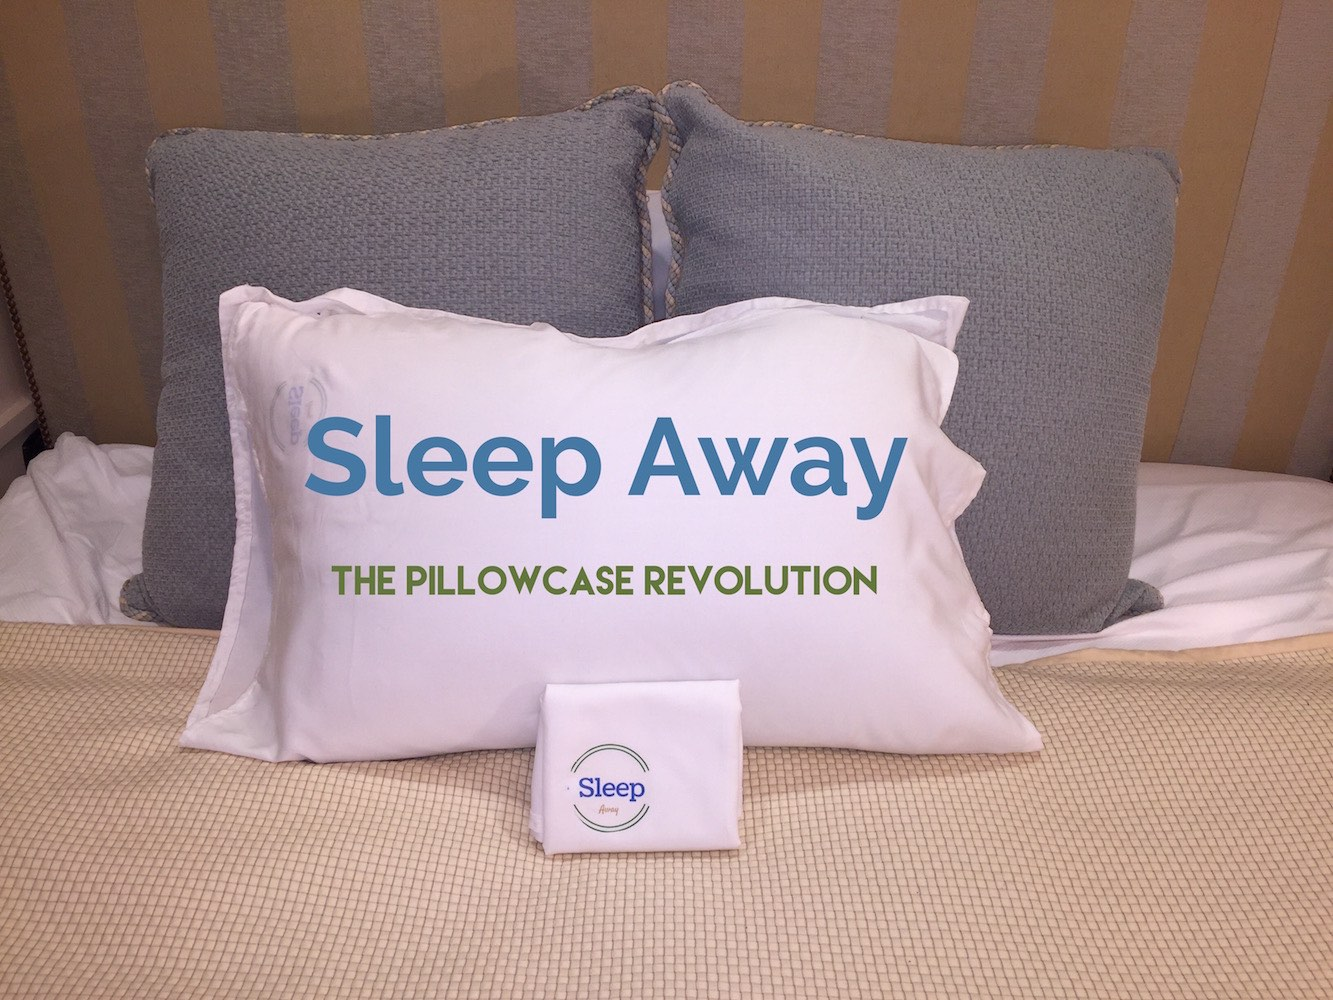 Sleep Away – The Pillowcase Revolution